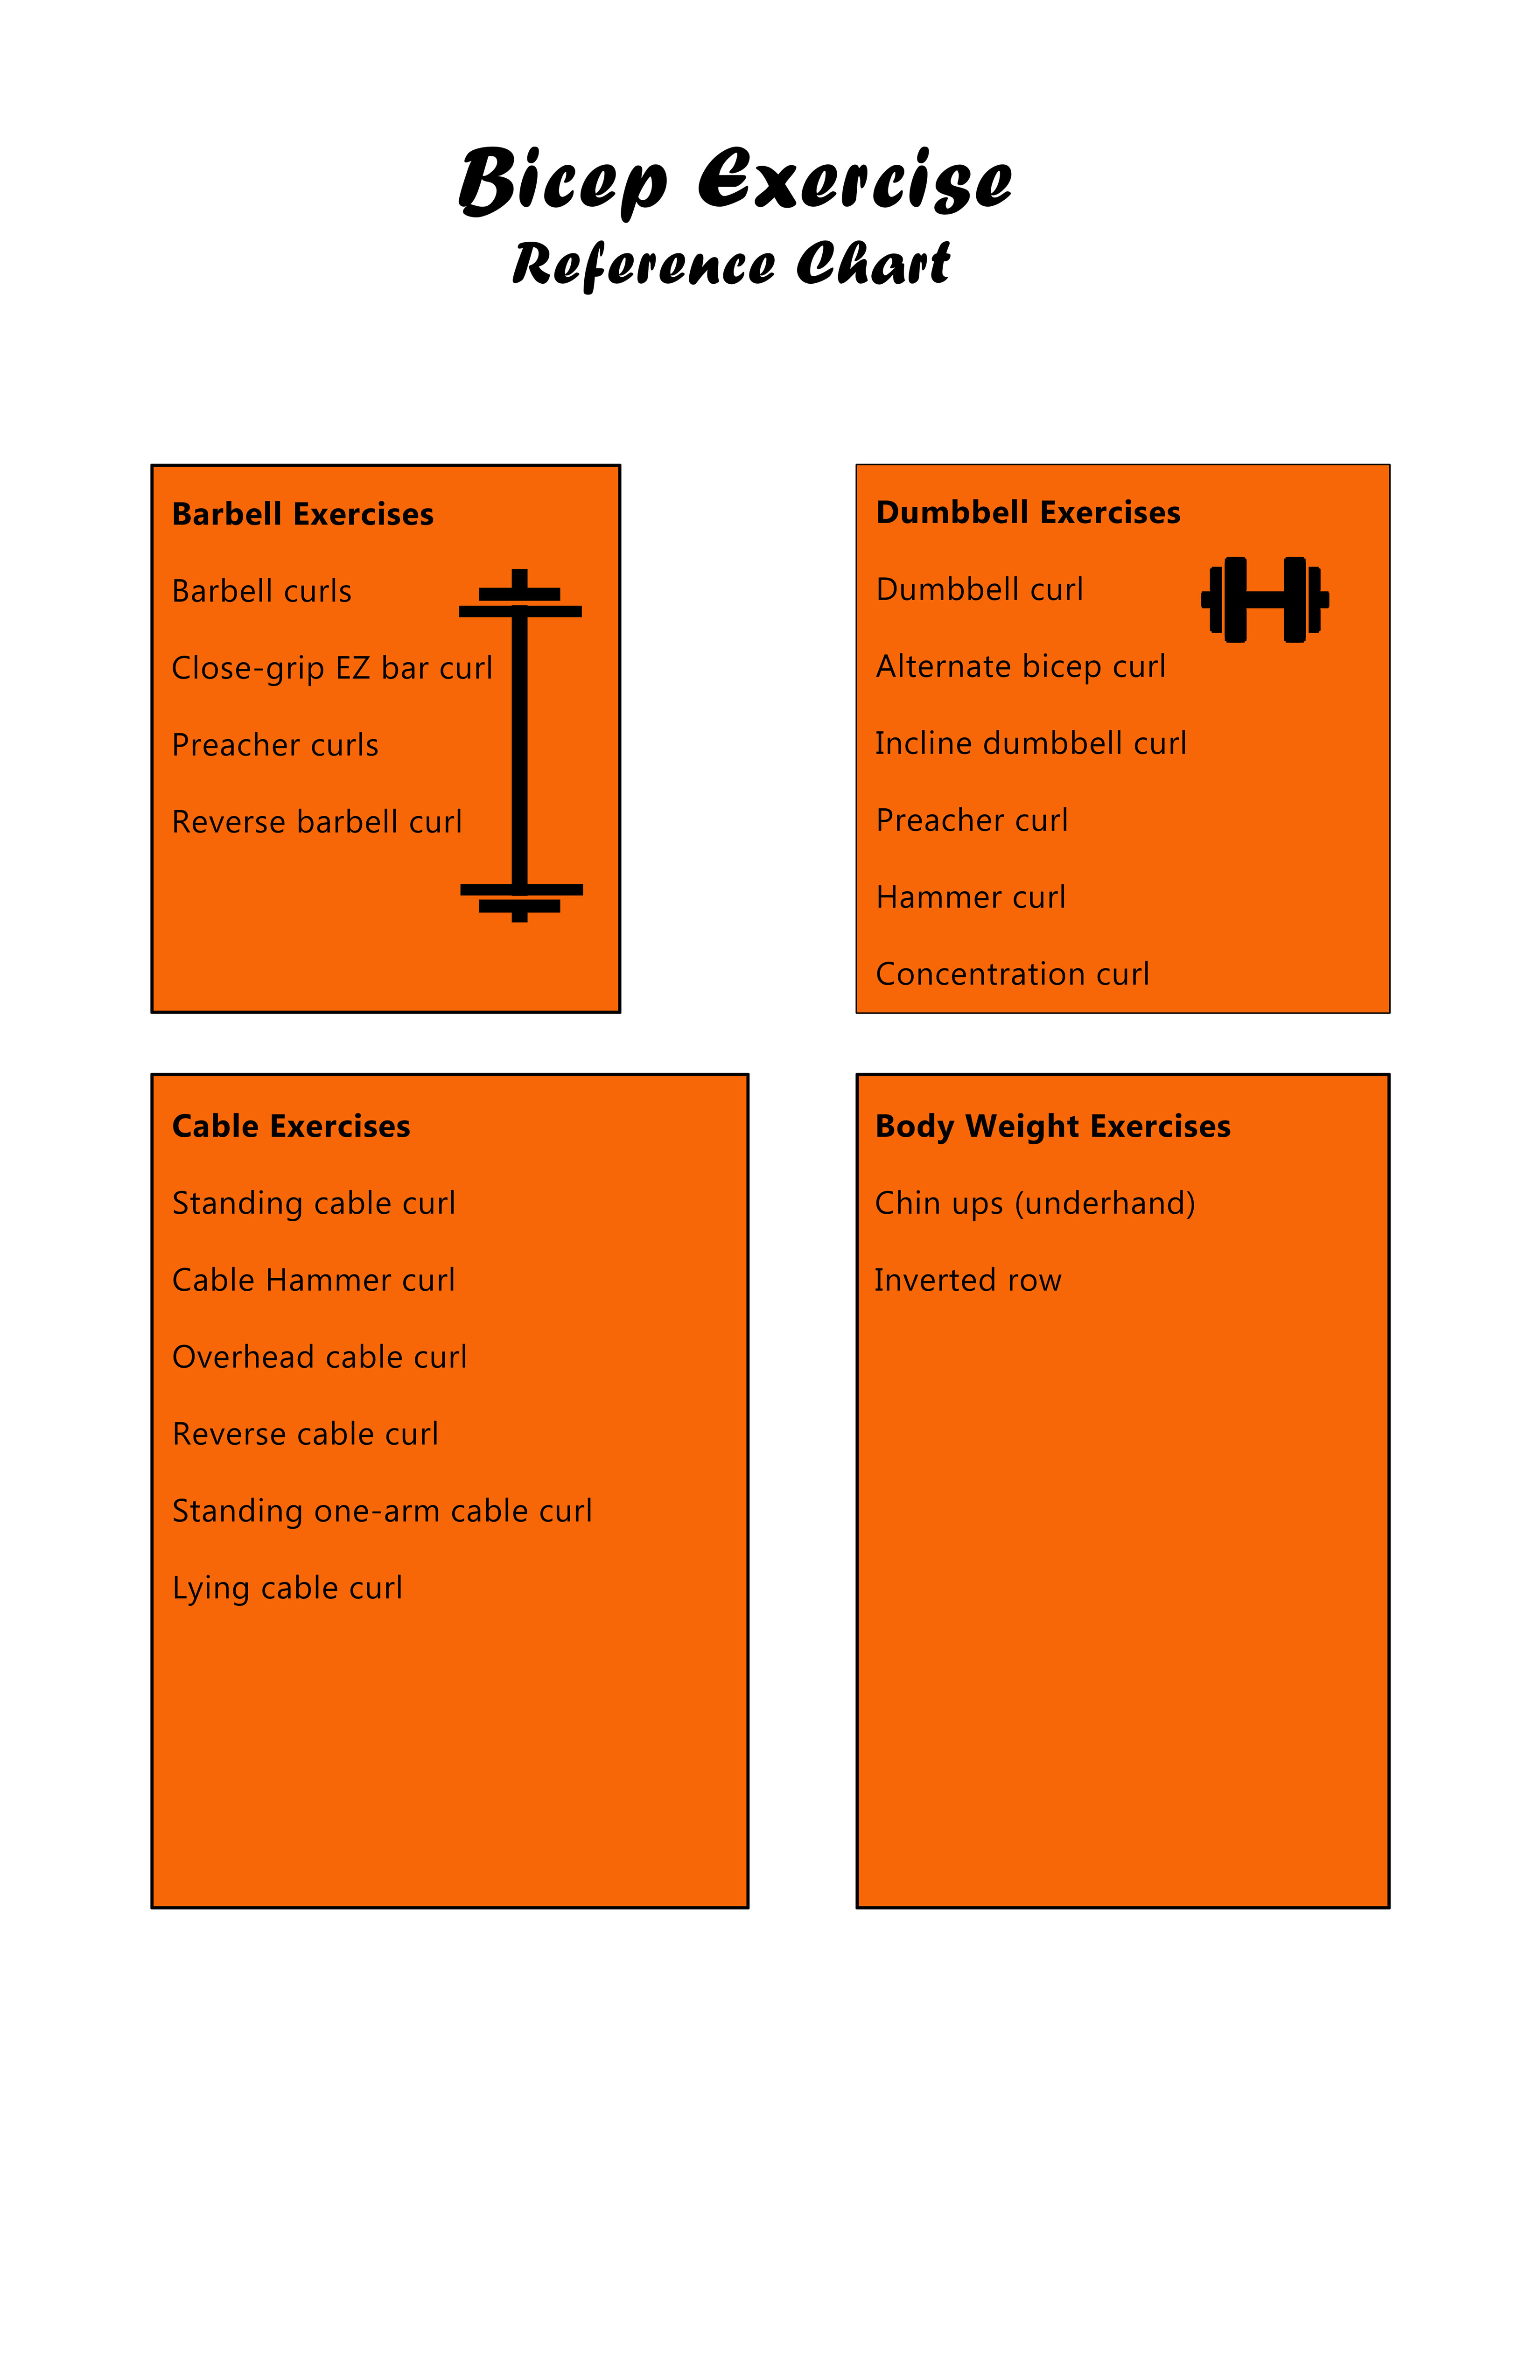 Bicep Exercise Chart